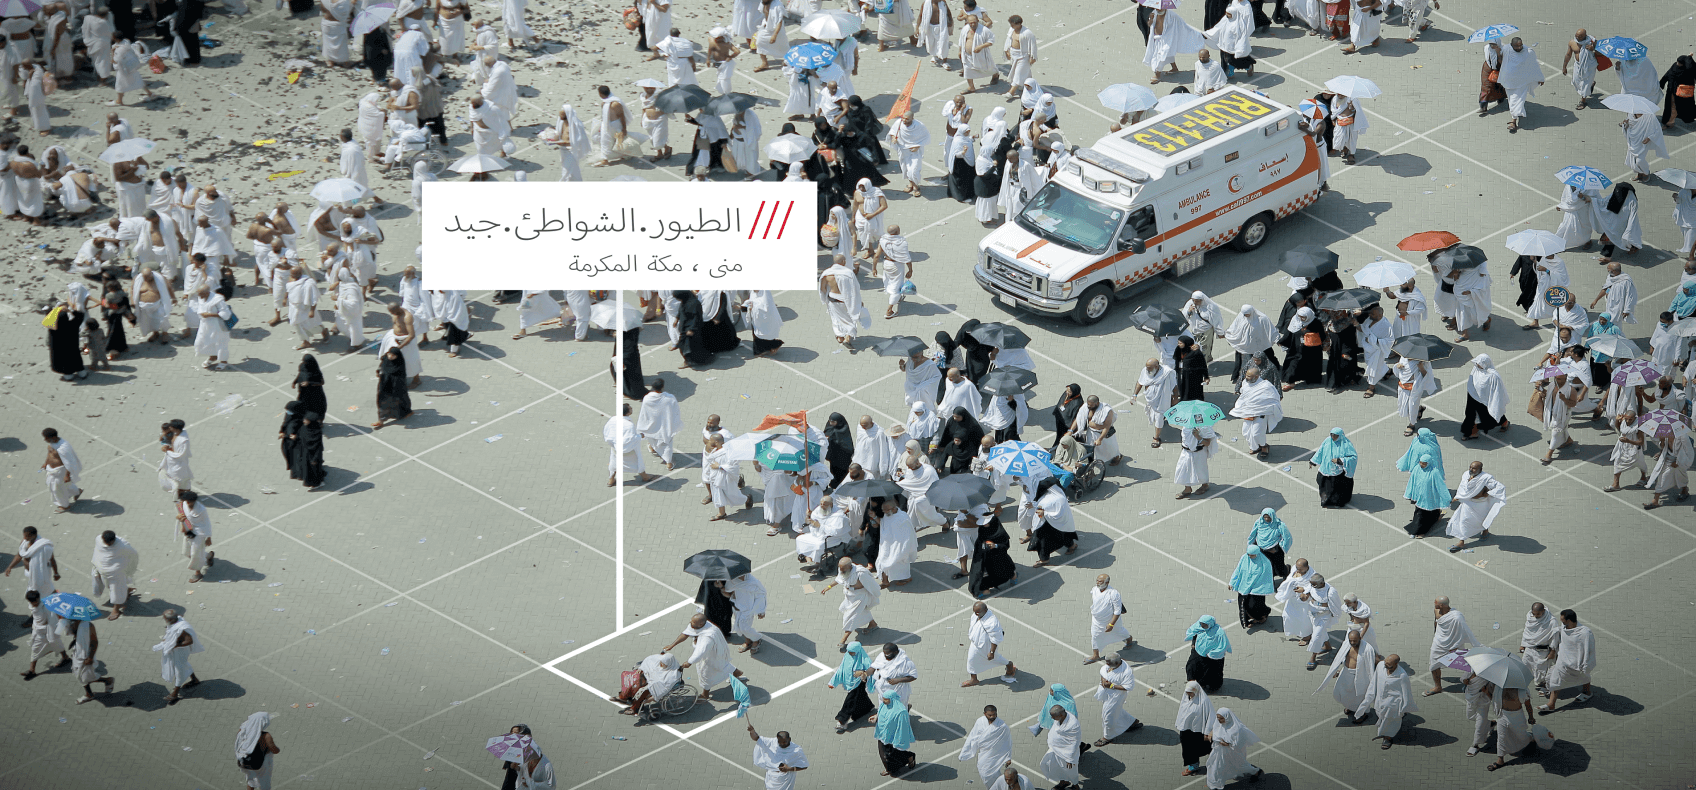 Saudi Red Crescent Authority - call-out image